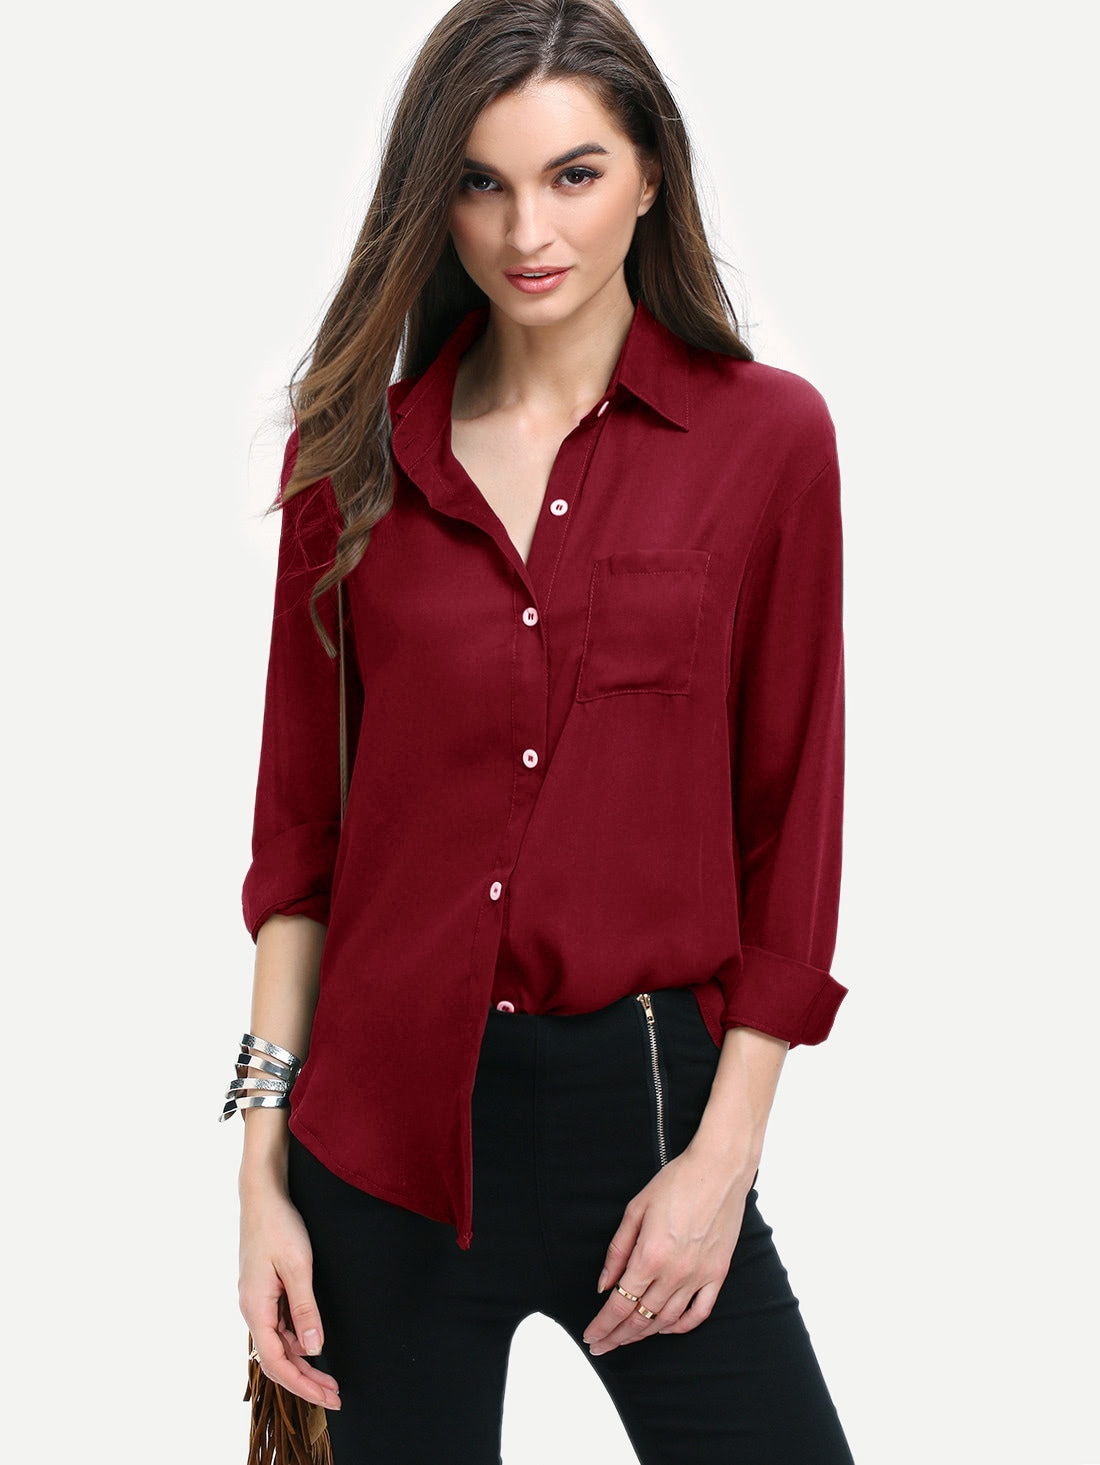 Curved hem pocket shirt shein sheinside for Women s button down shirts extra long